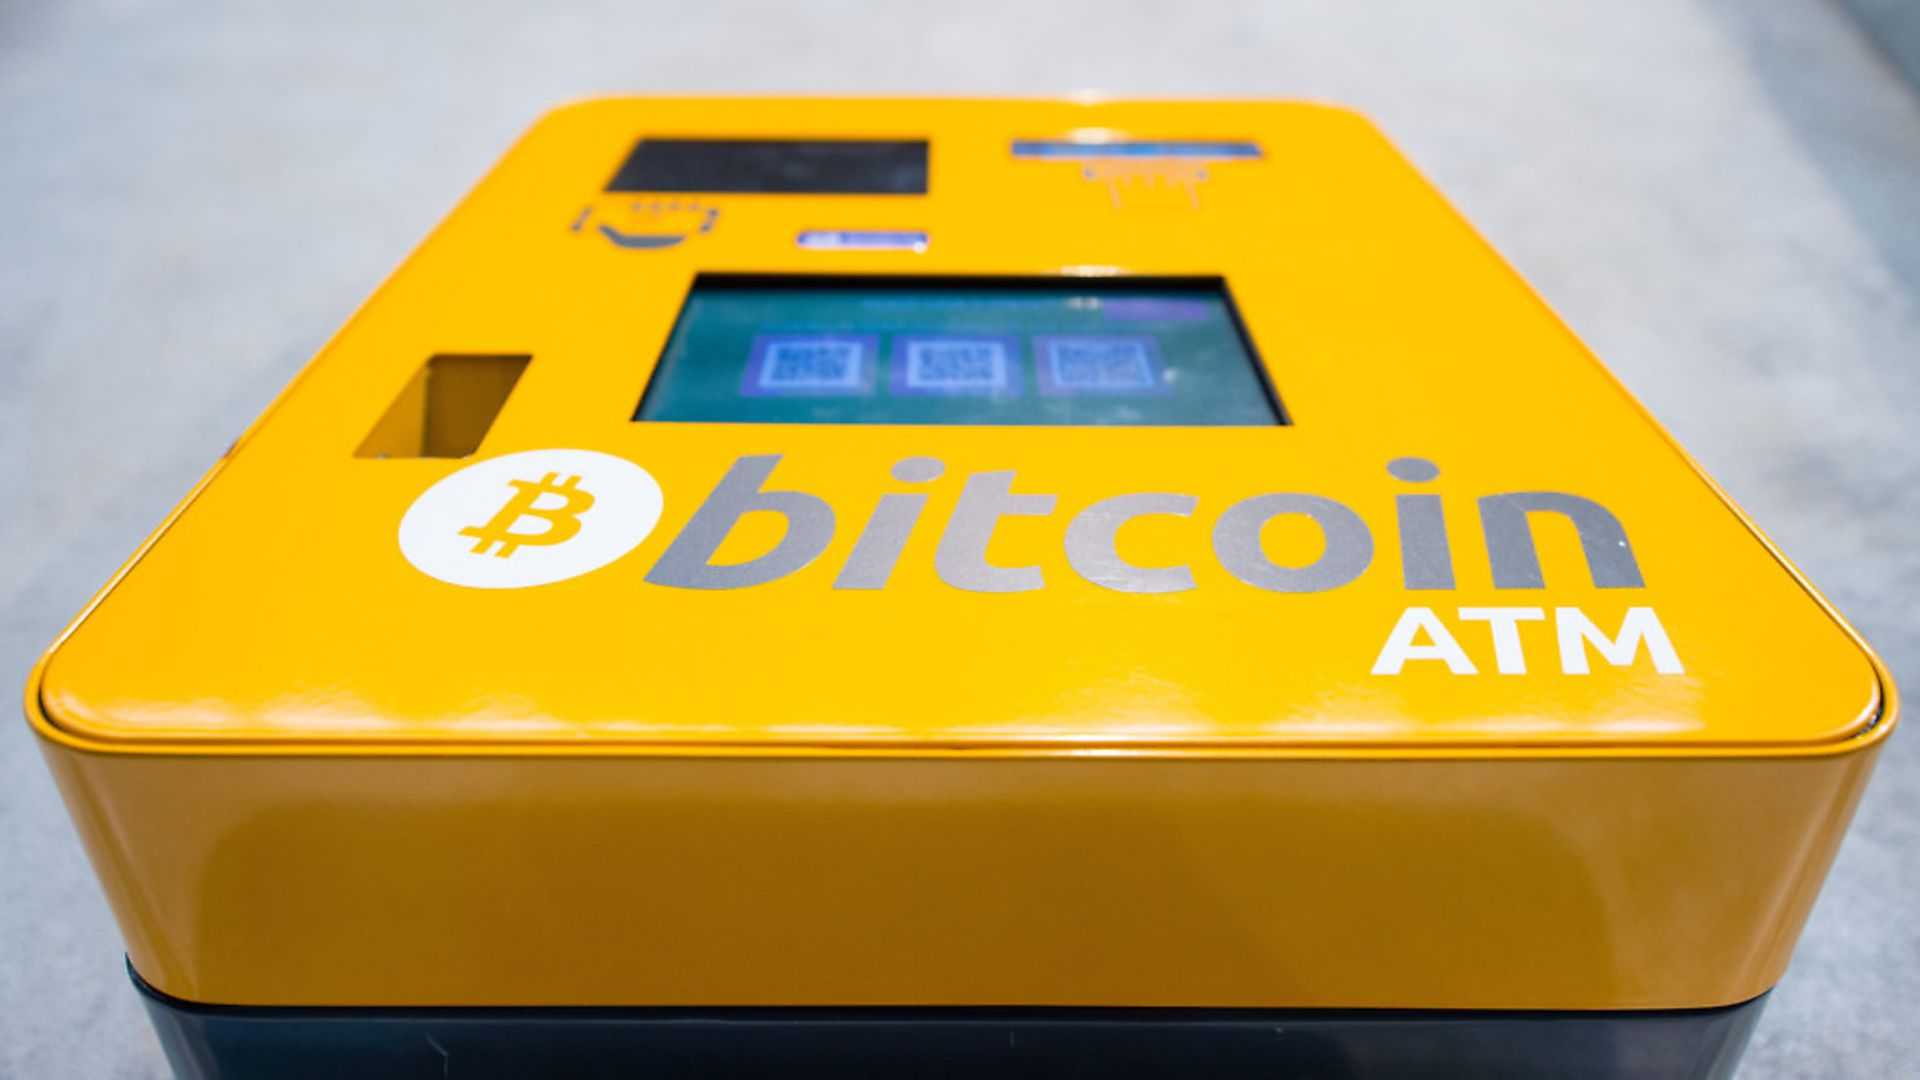 A bitcoin ATM. Each bitcoin is now worth nearly ,000. Picture: Dominic Lipinski/PA Wire - Credit: PA Archive/PA Images